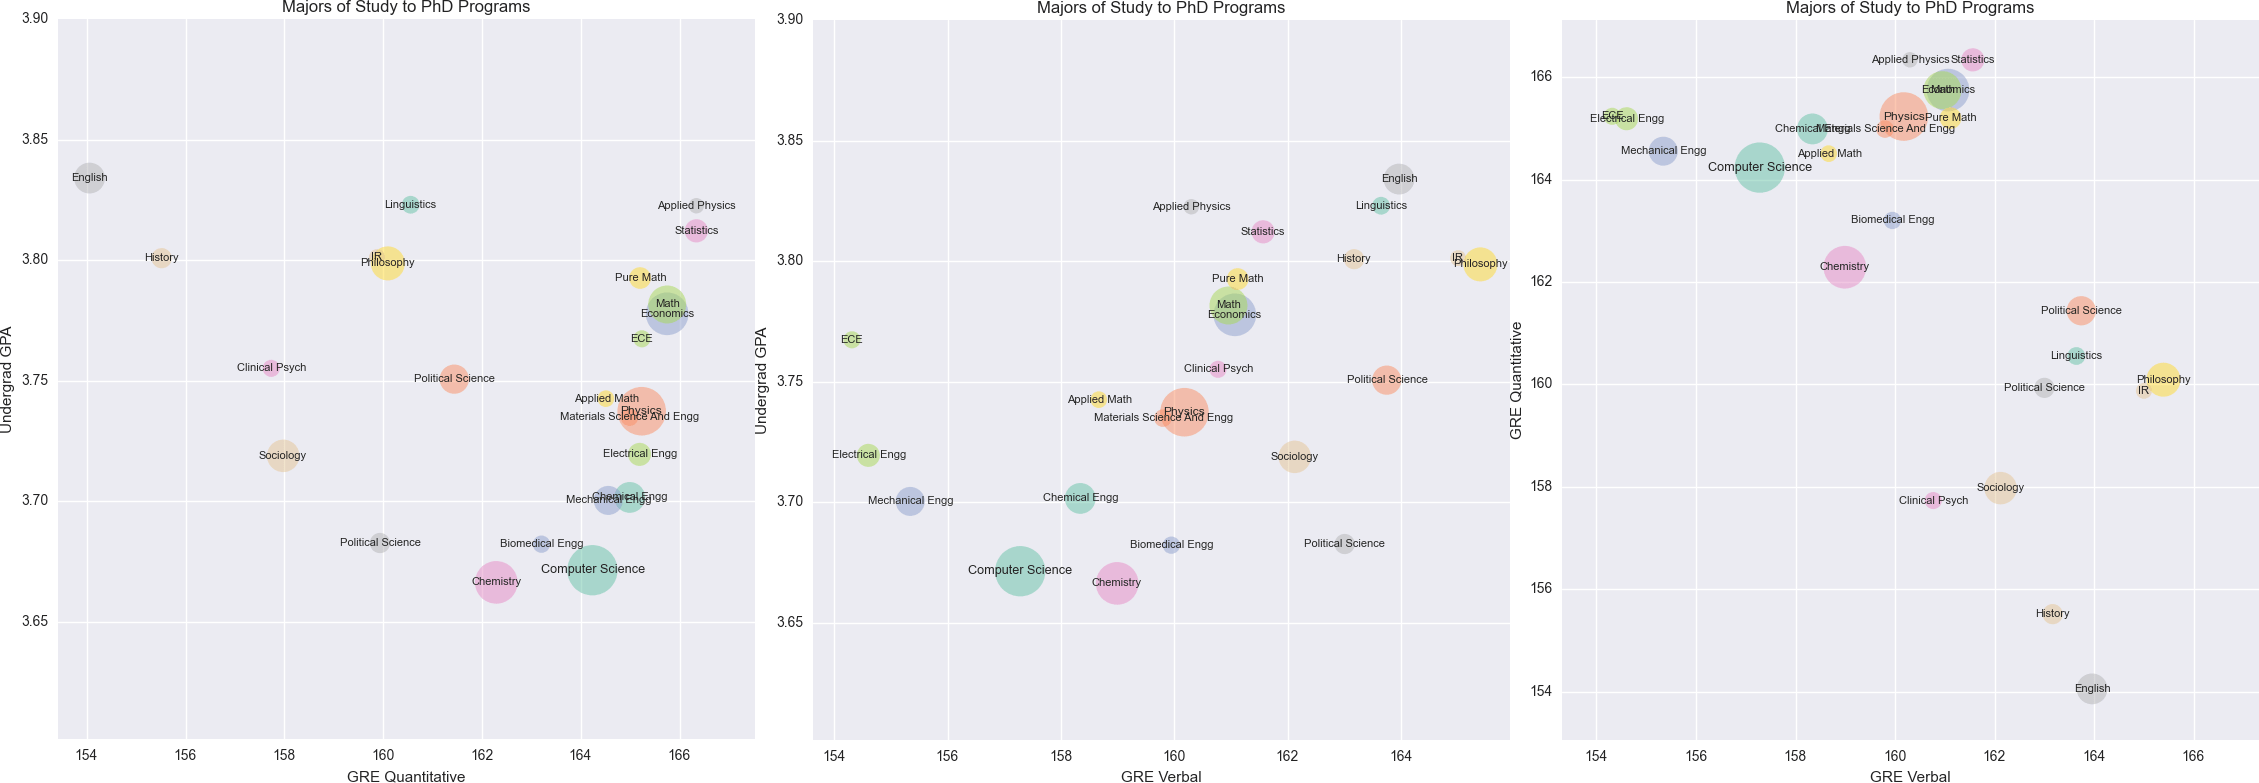 A Comparison Of Average Undergraduate Gpa, Gre Verbal And Gre Quantitative  Scores For The Most Popular Majors. Most Importantly, We See A Negative